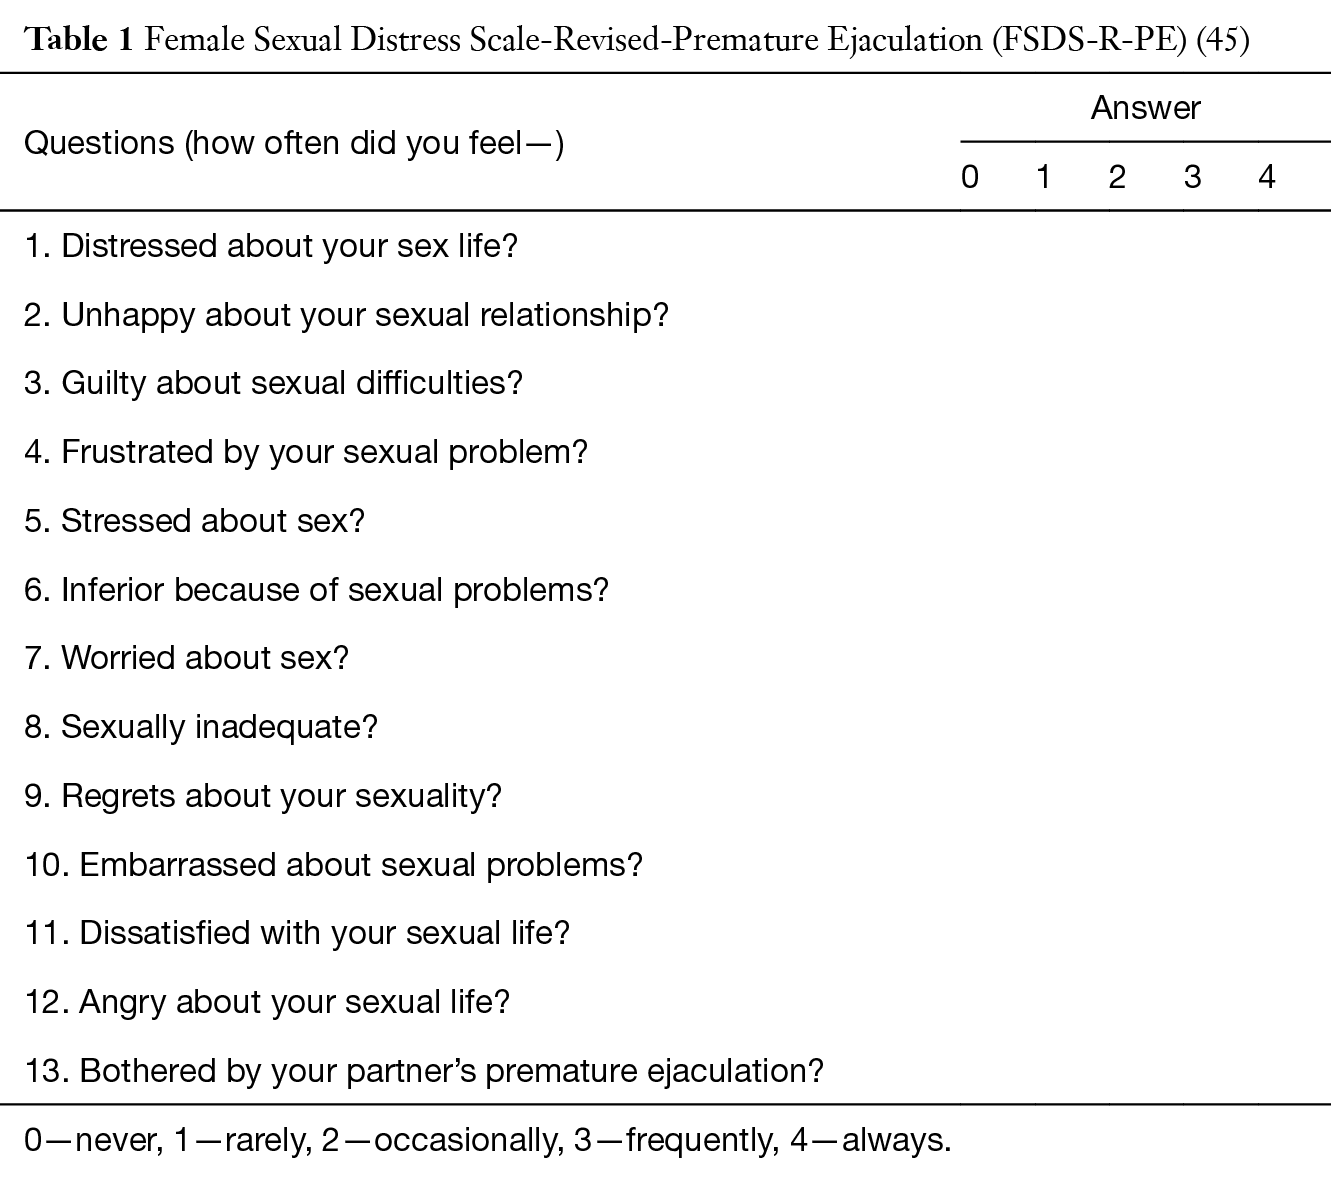 List of psycho-sexual disorders of the digestive system